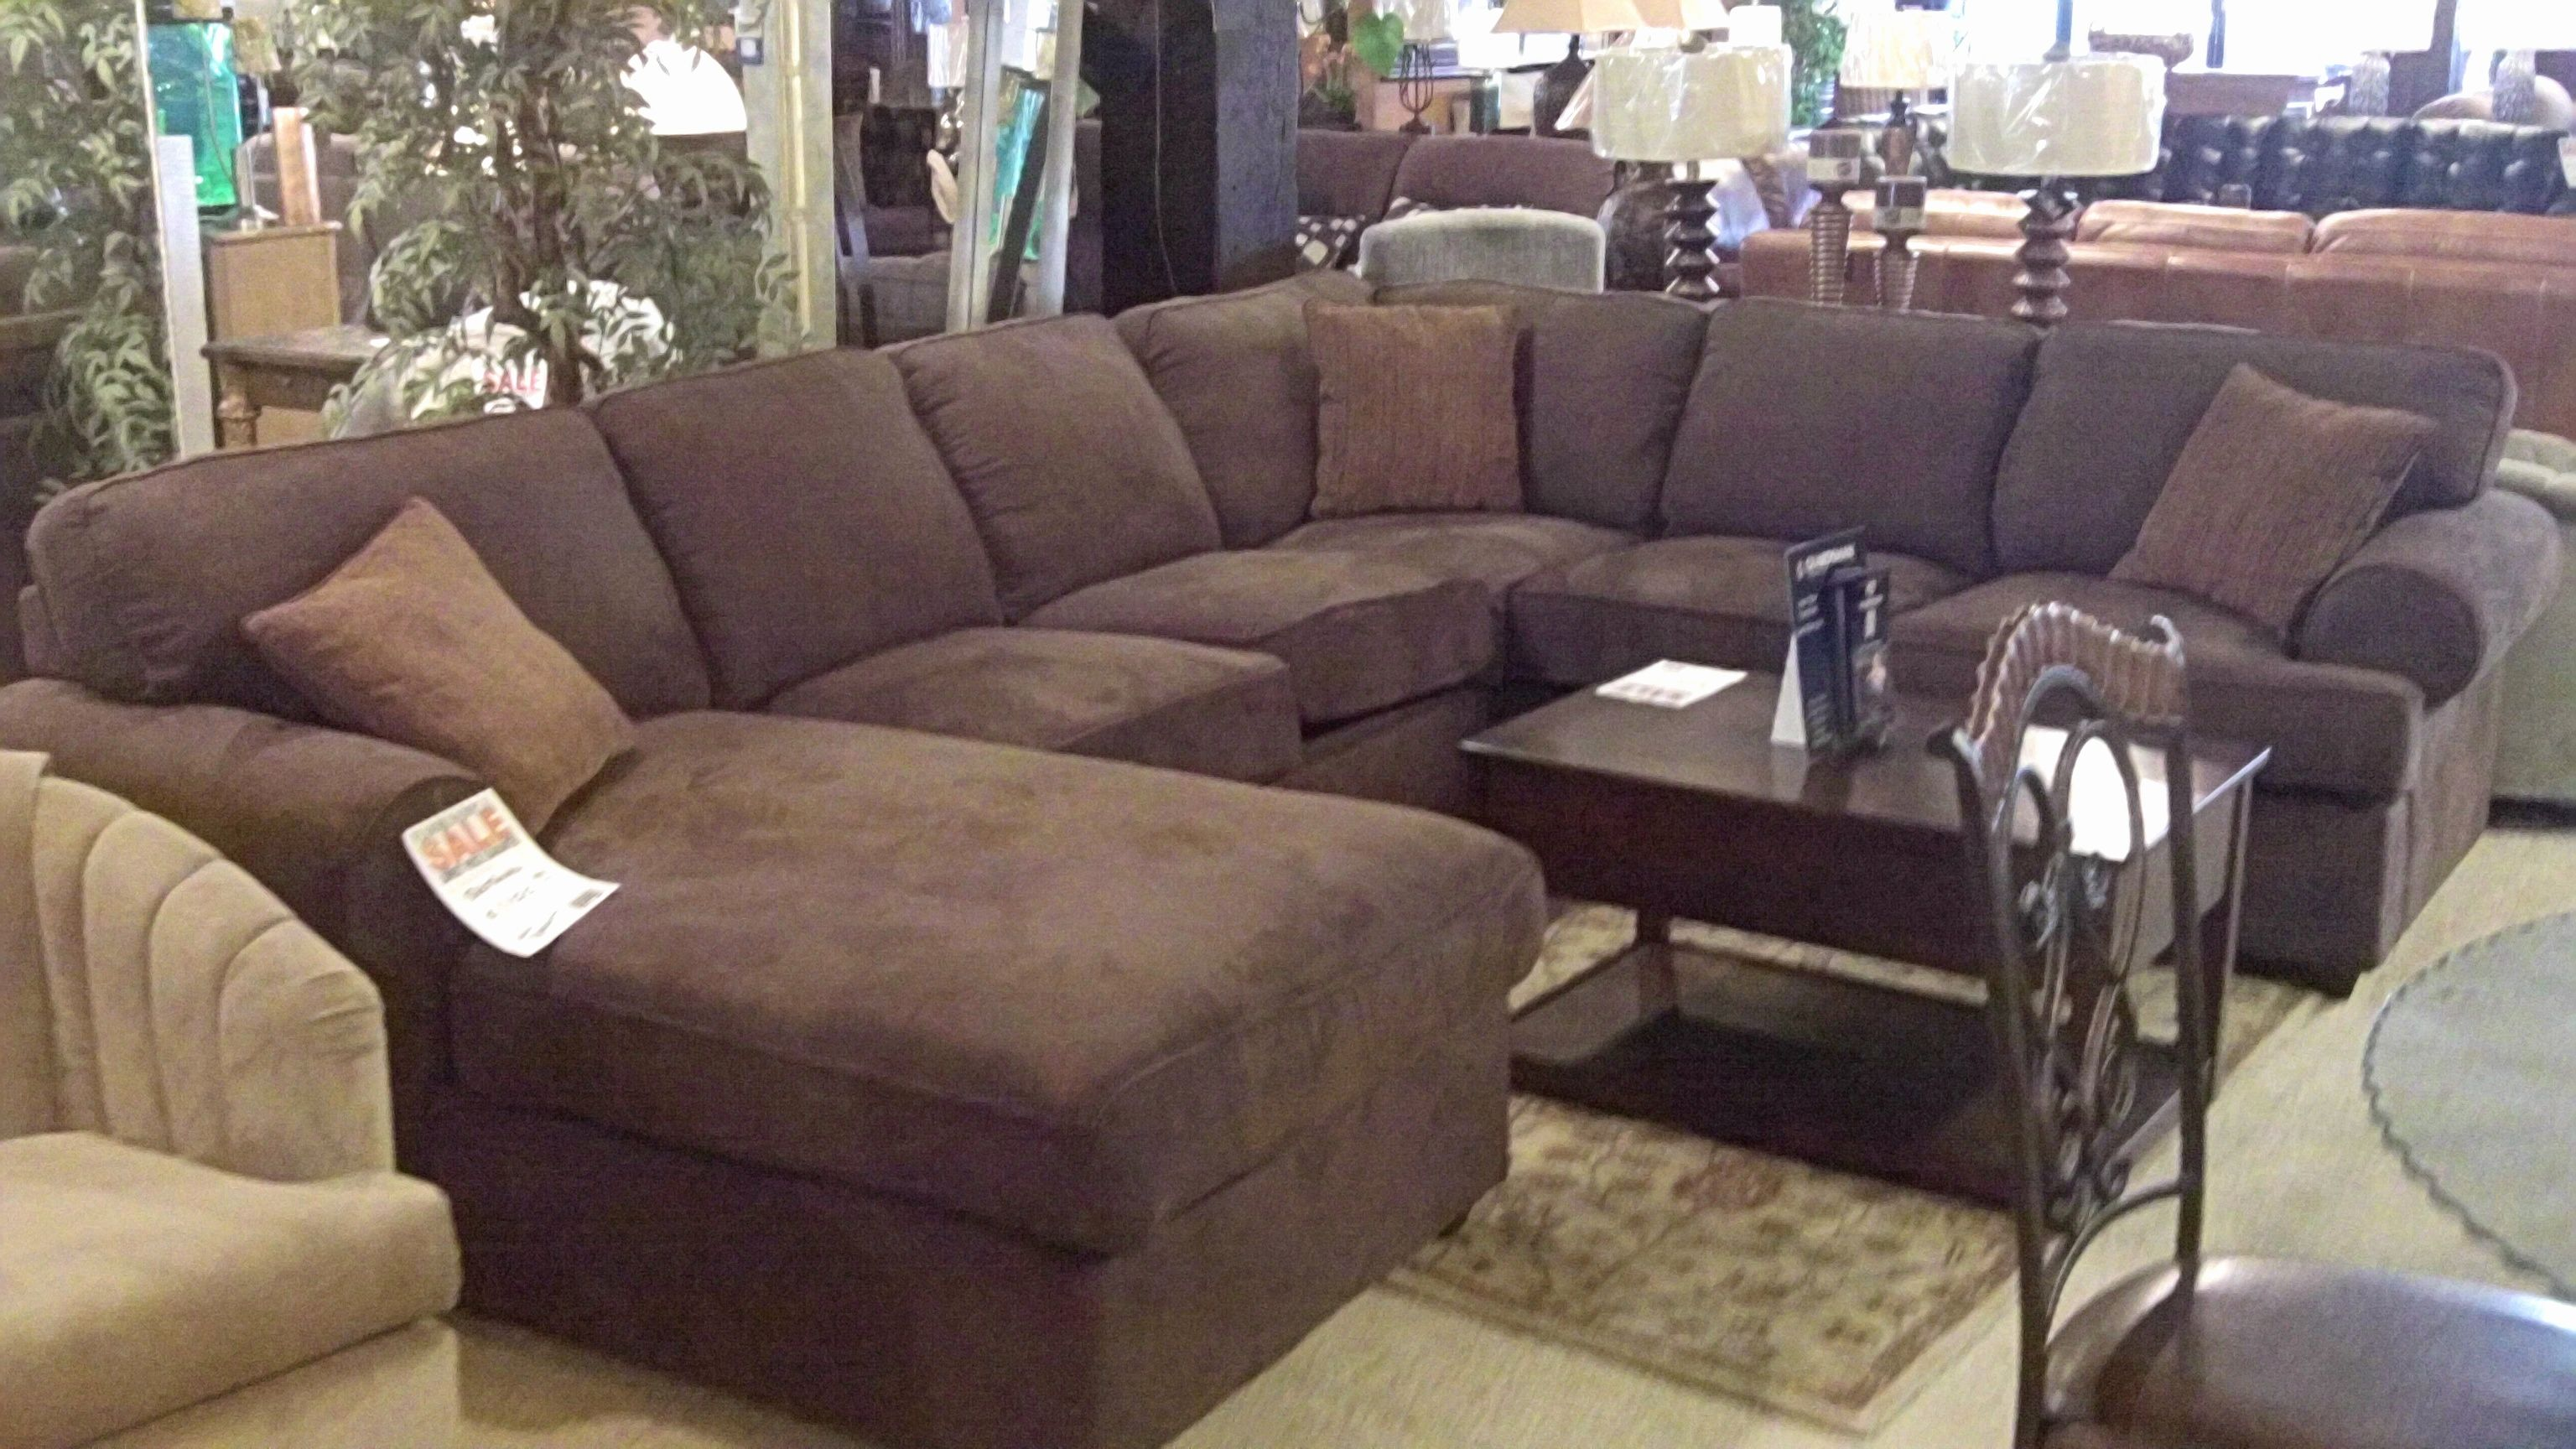 sectional sofa vancouver monarch sofas dallas reviews luxury small leather images large